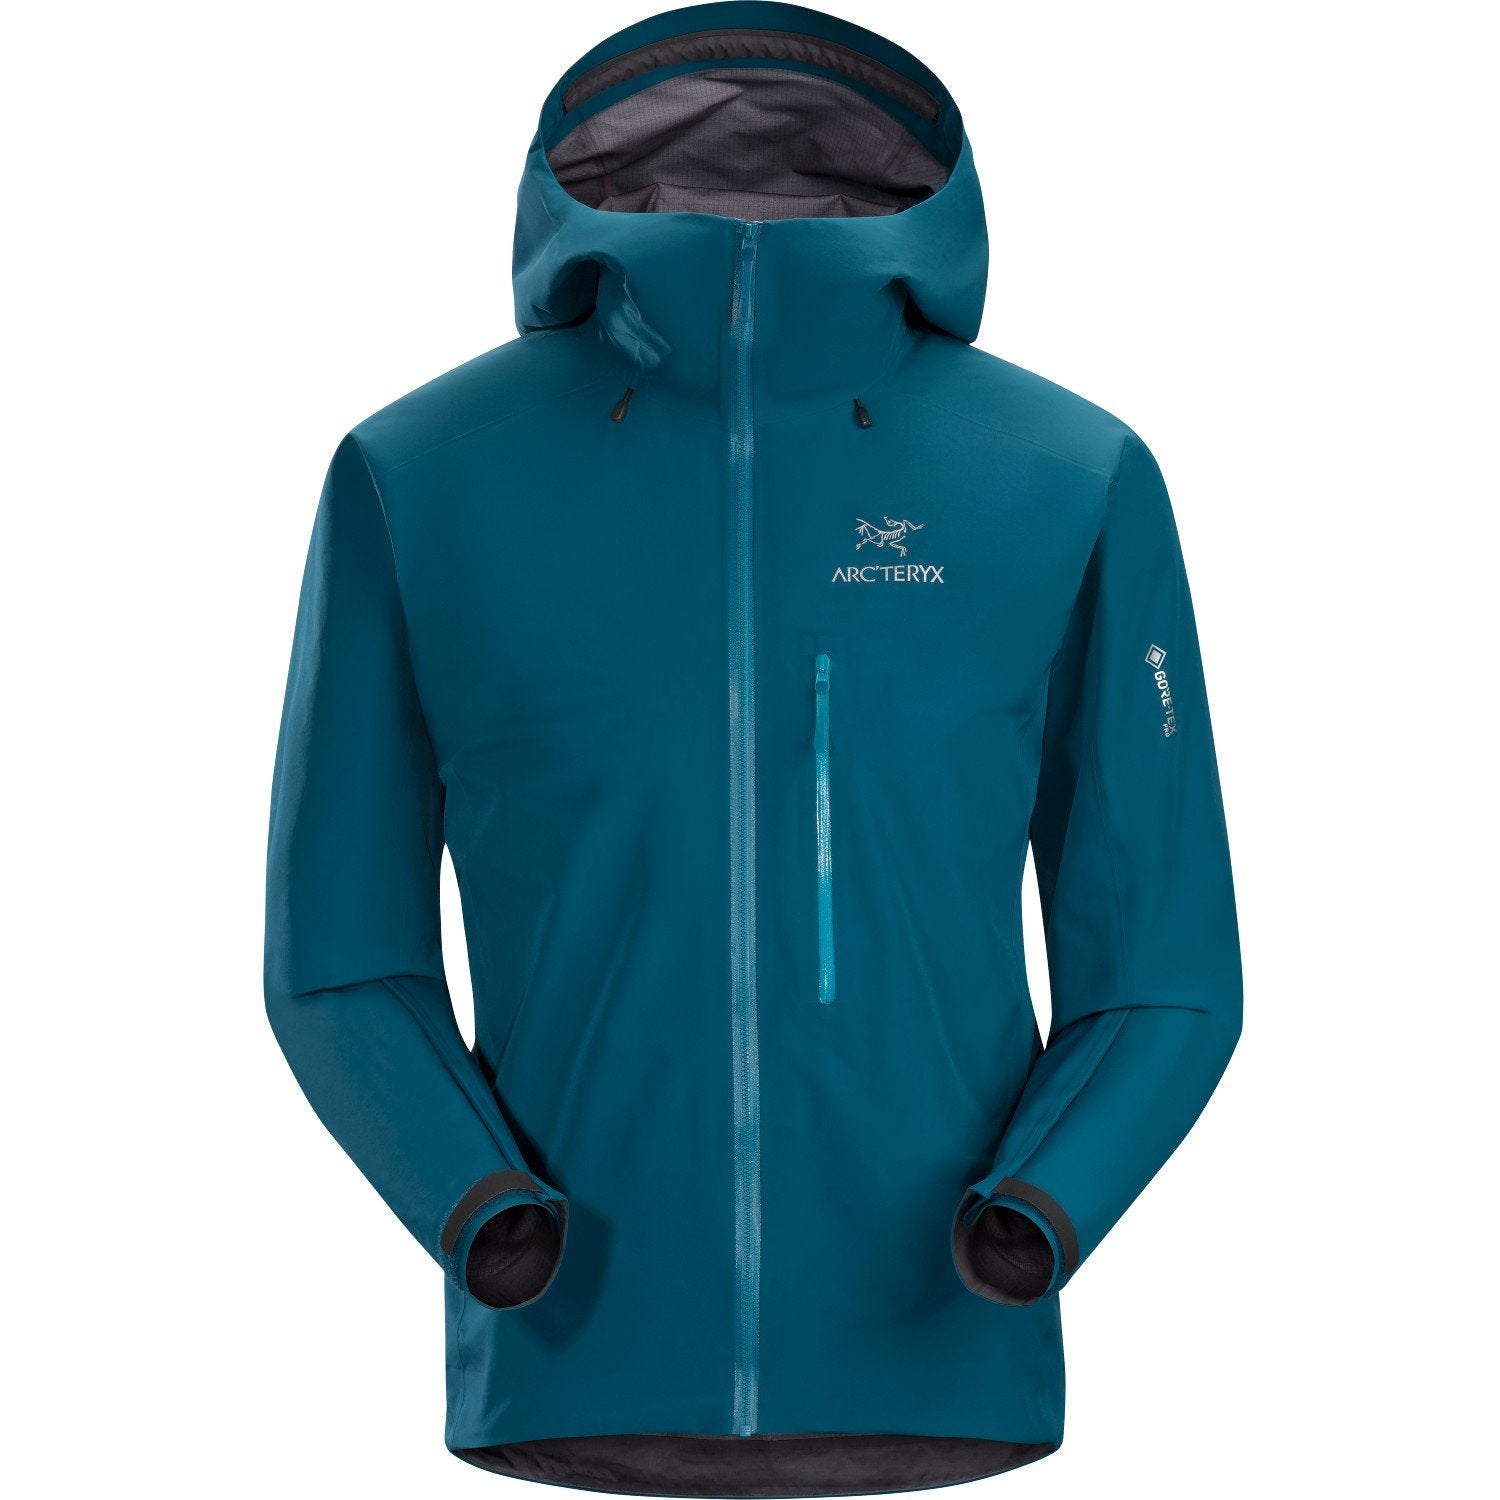 Arc'Teryx Alpha FL Jacket, front view shown fully zipped up, in Blue colour